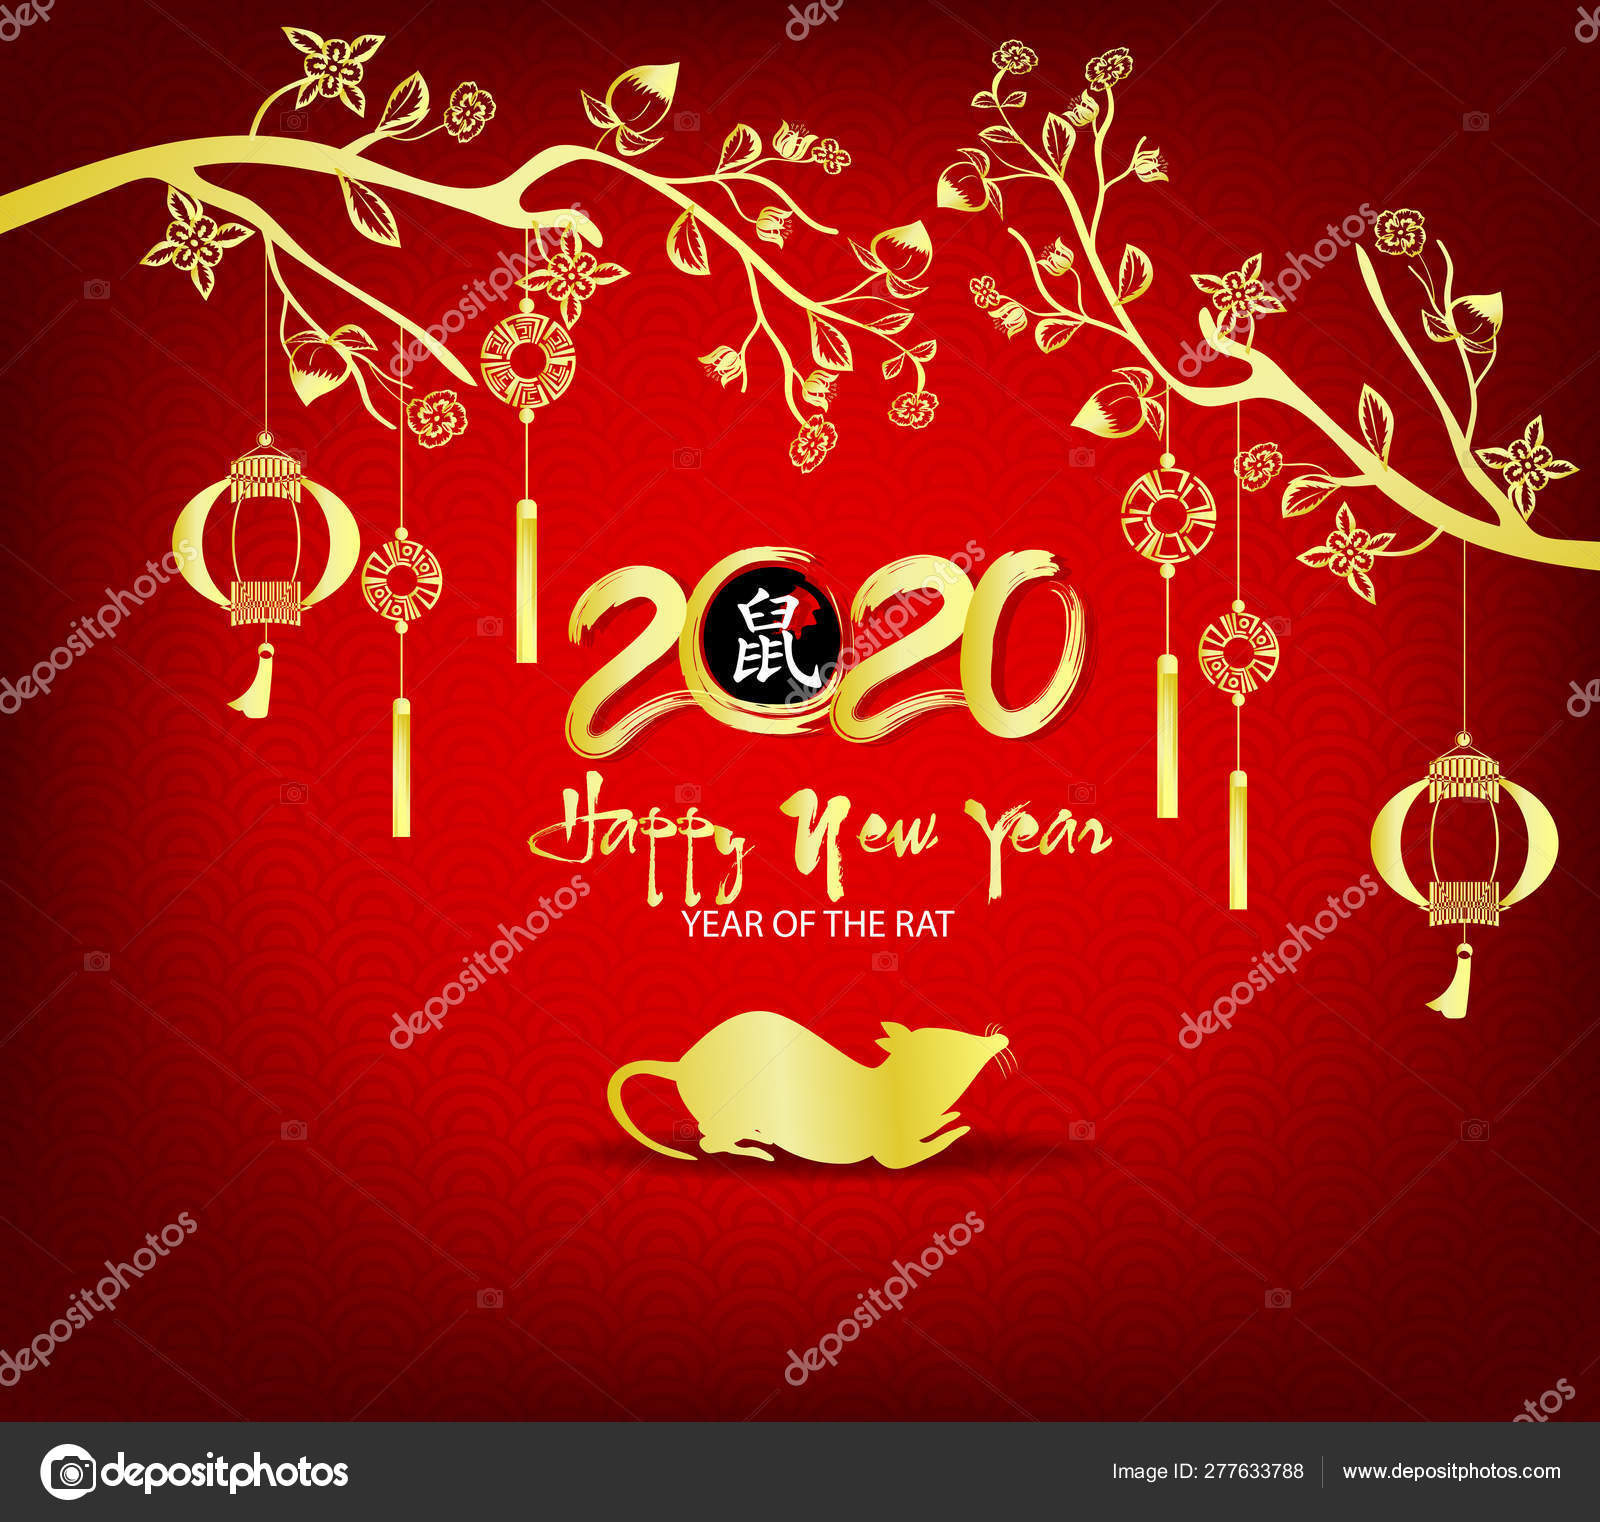 Merry Christmas In Chinese.Happy New Year 2020 Merry Christmas Happy Chinese New Year